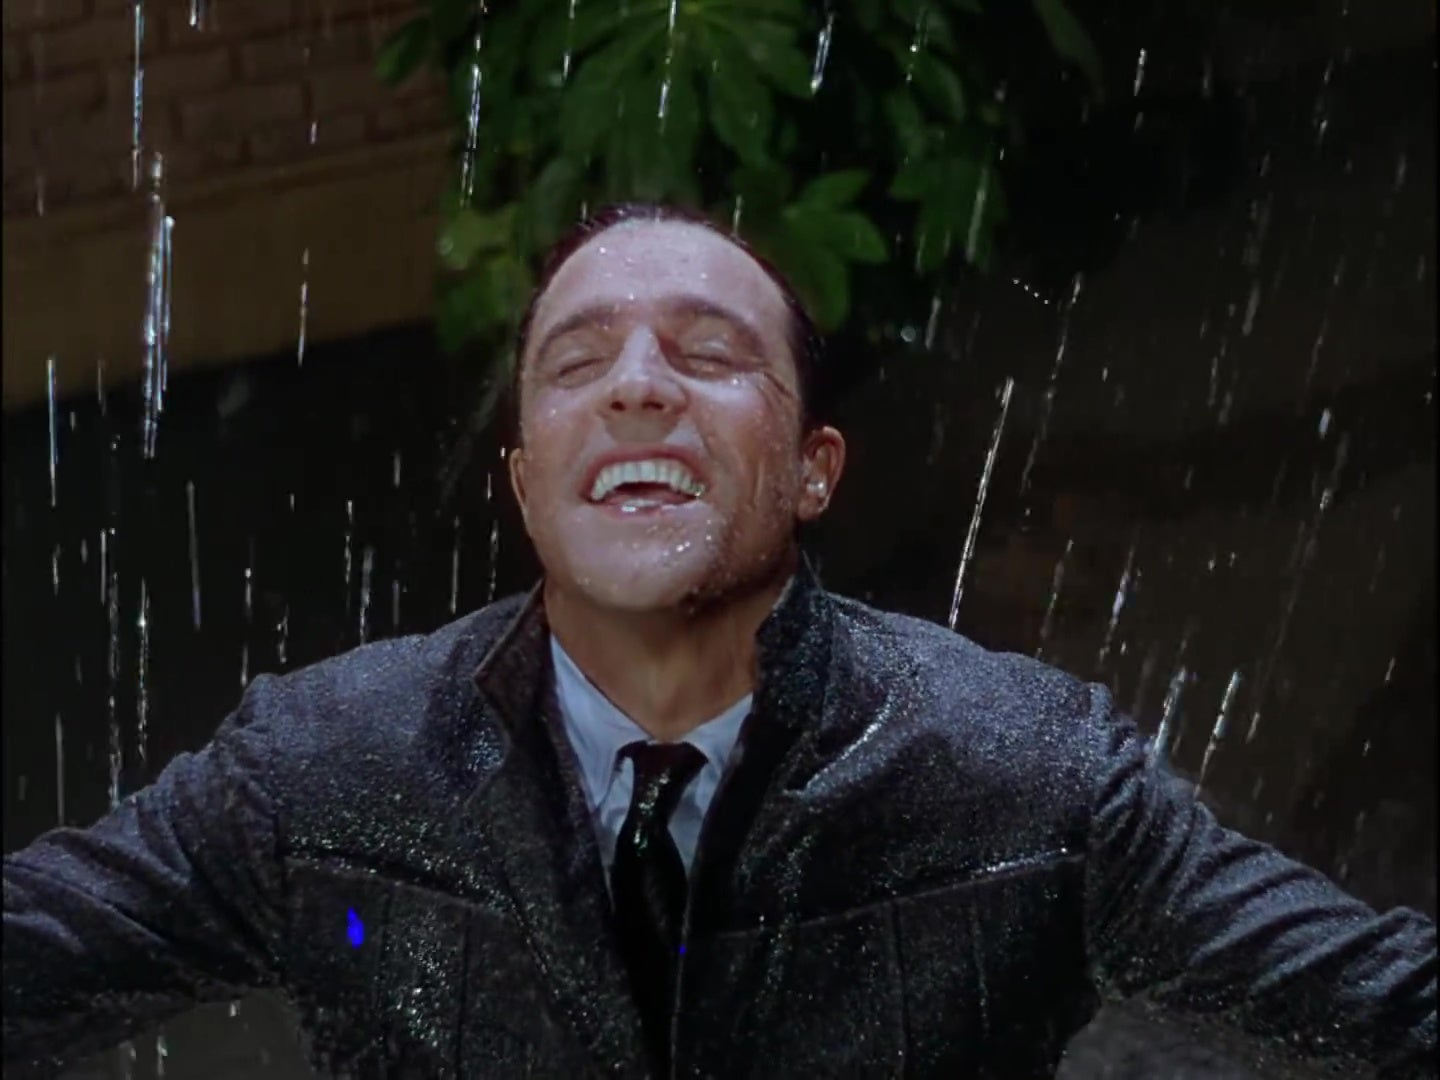 Gene Kelly smiling in a downpour in Singin' in the Rain.